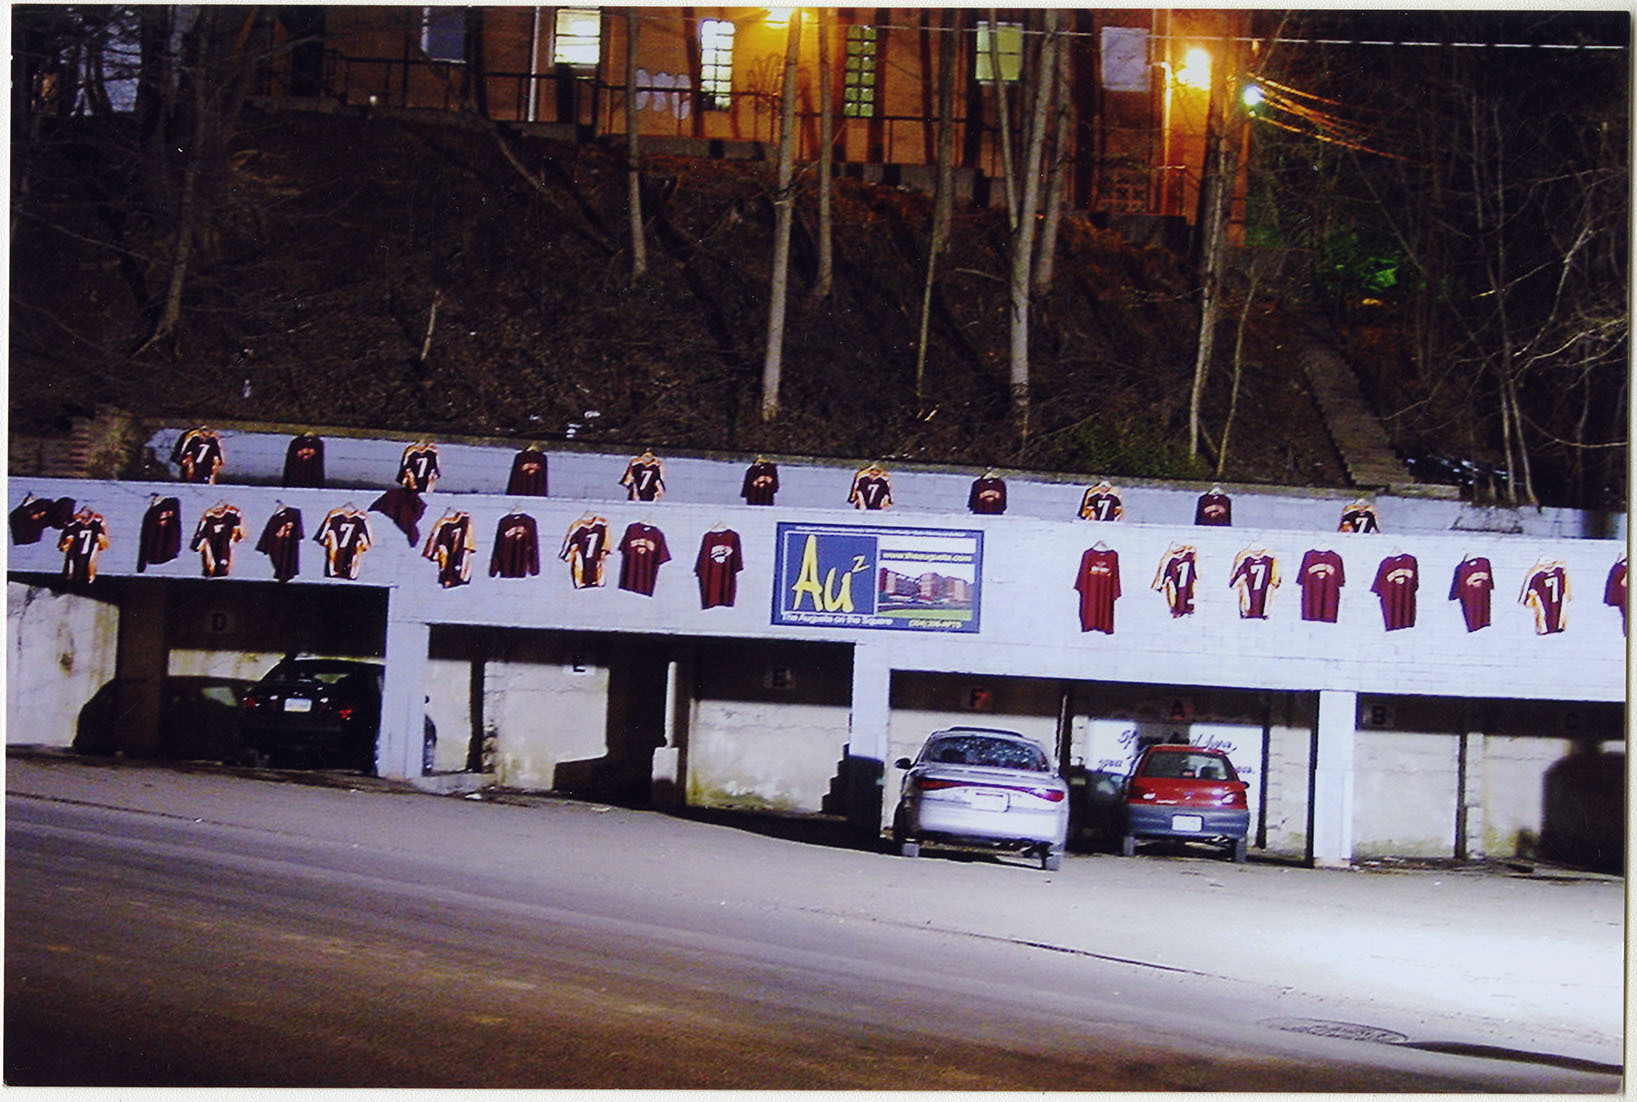 Photograph of a Parking Lot with VT Jerseys, F00048 (Ms2008-020)